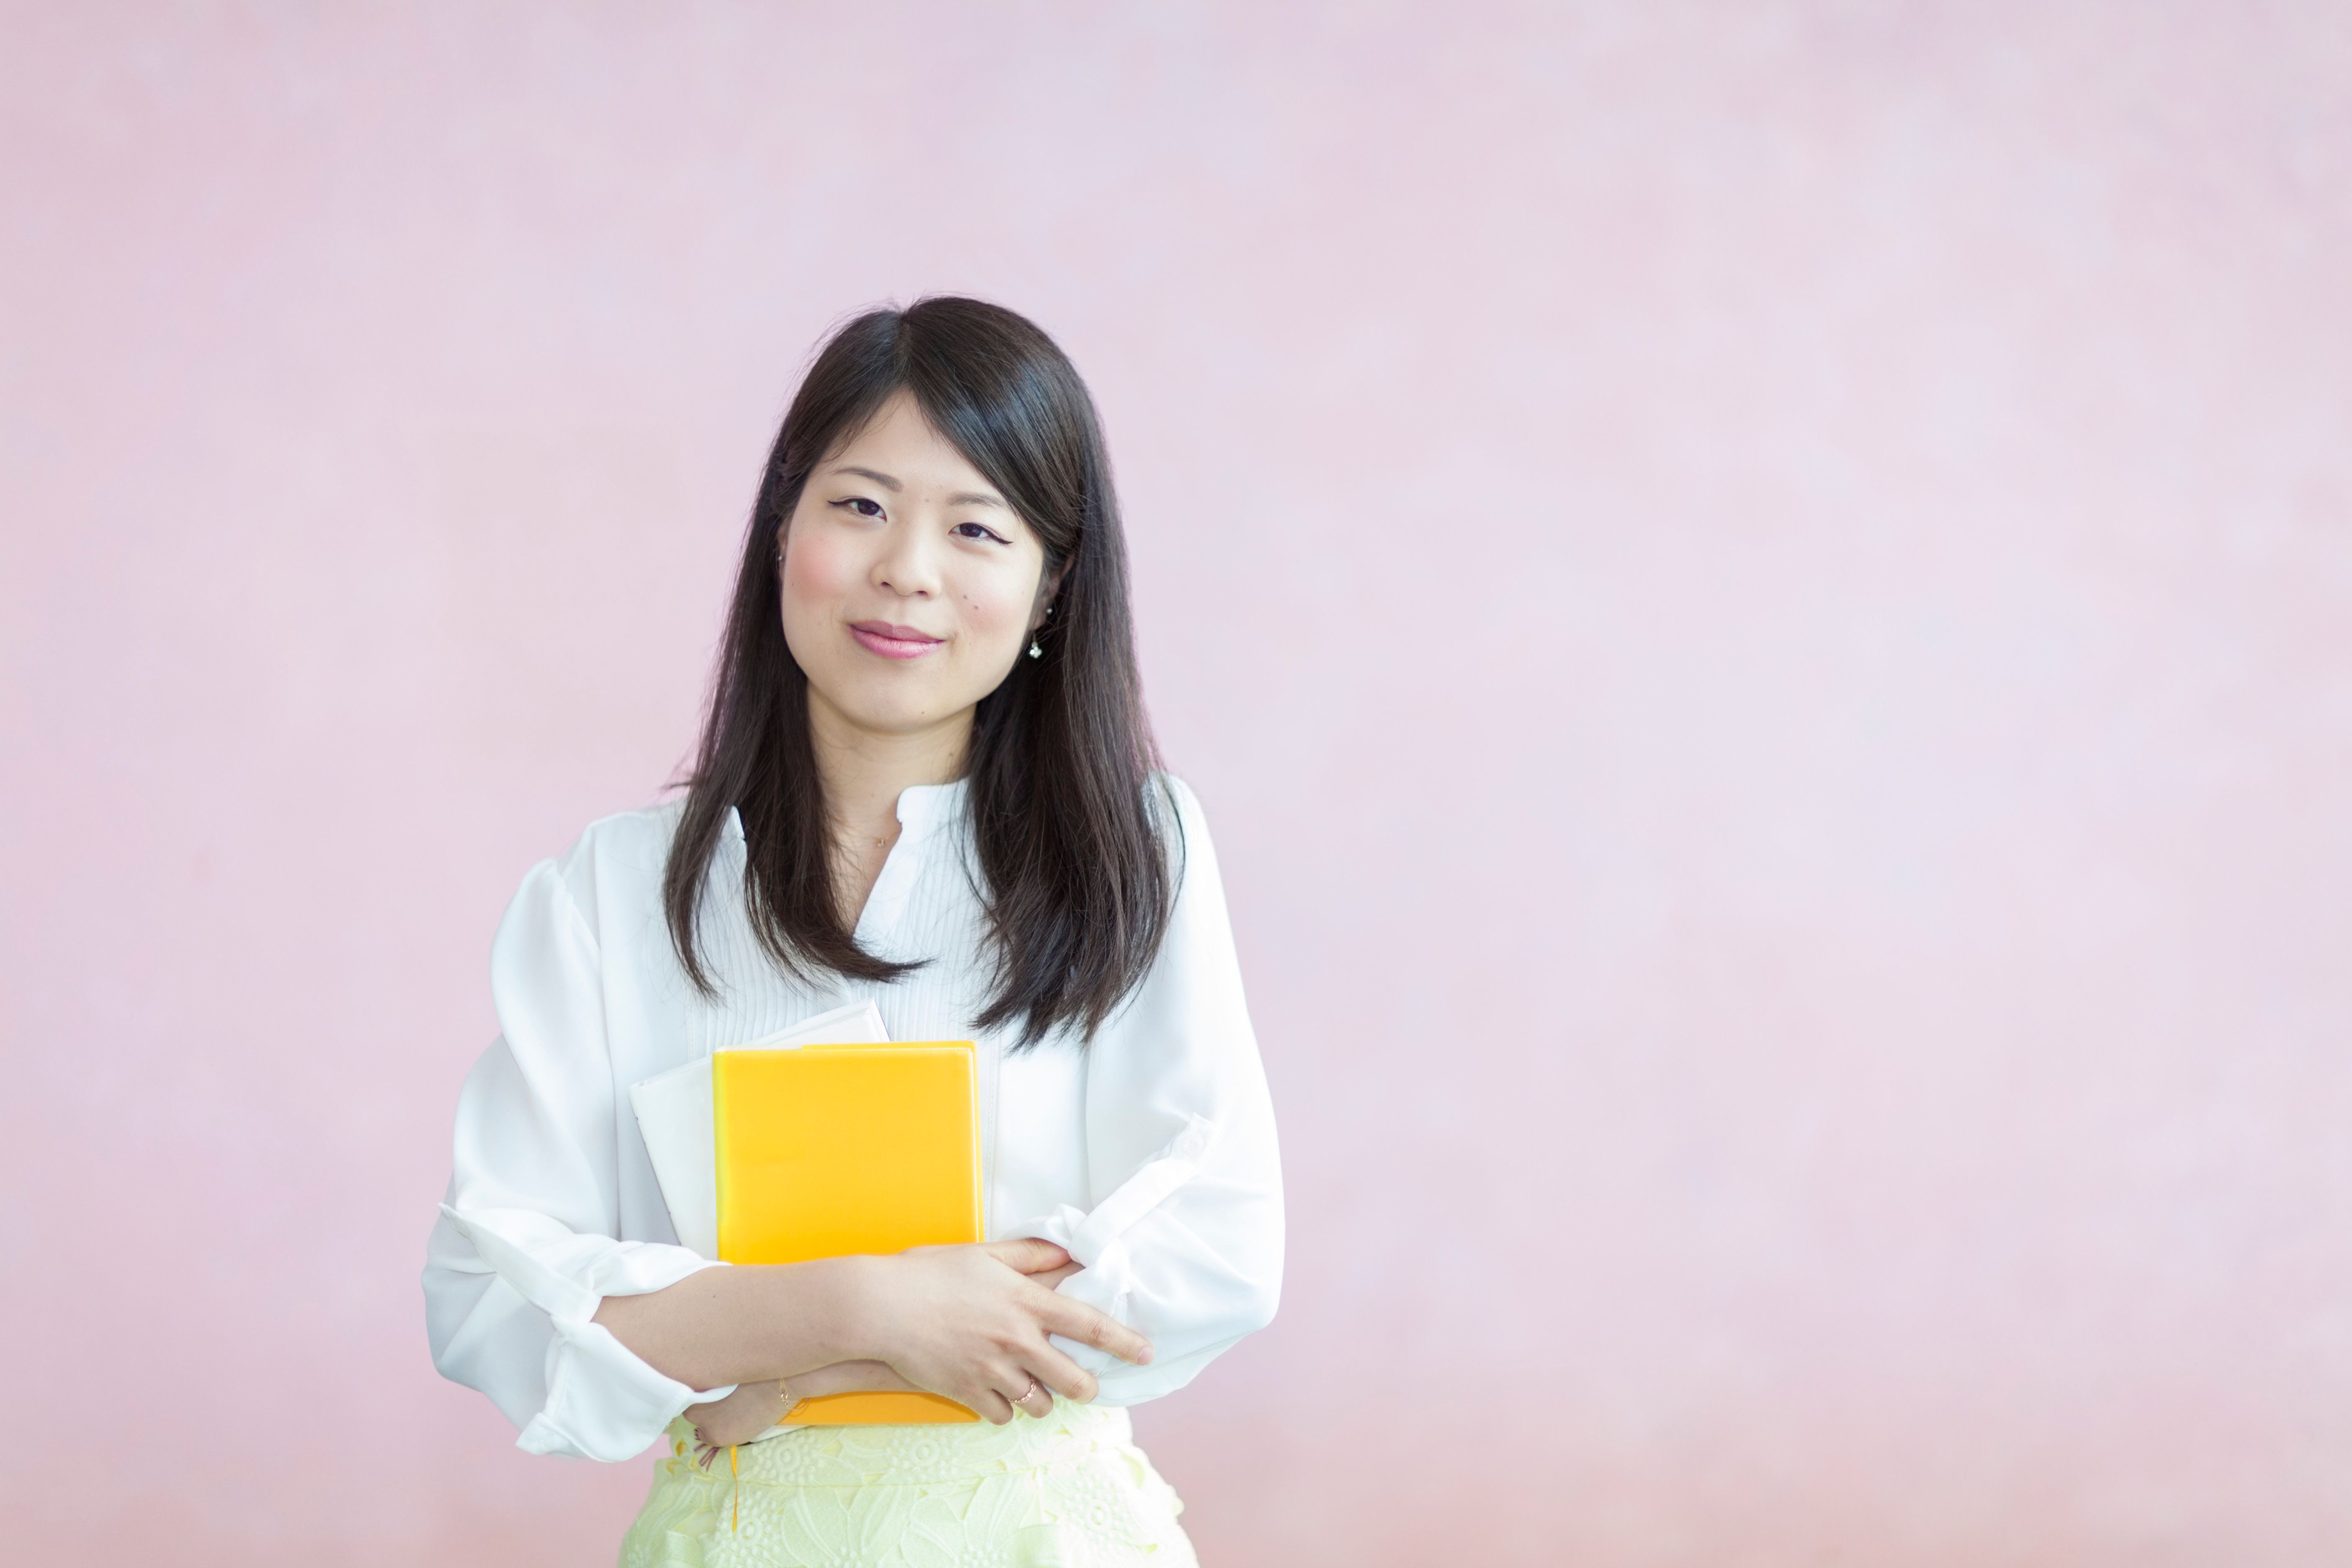 A young Japanese female student is holding books and looking at the camera happily in fron of a pink background.